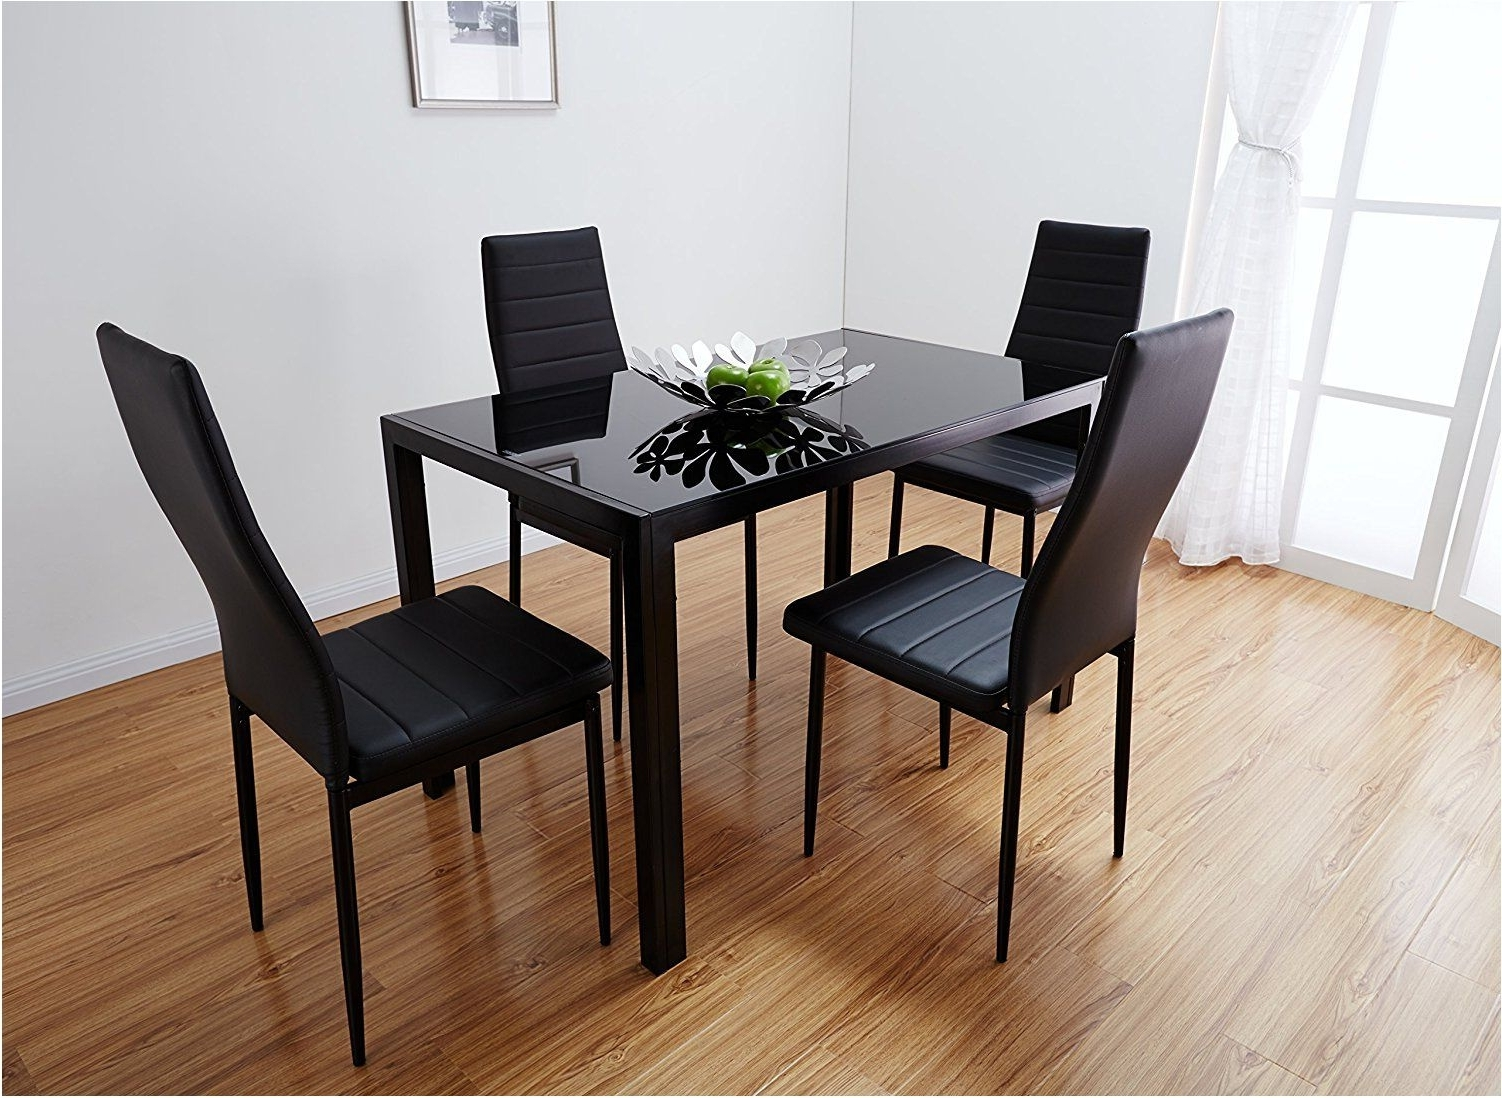 Cheap Glass Dining Tables And 6 Chairs For Fashionable Nice Black Glass Dining Table Set With 4 Faux Leather Chairs Brand (View 18 of 25)